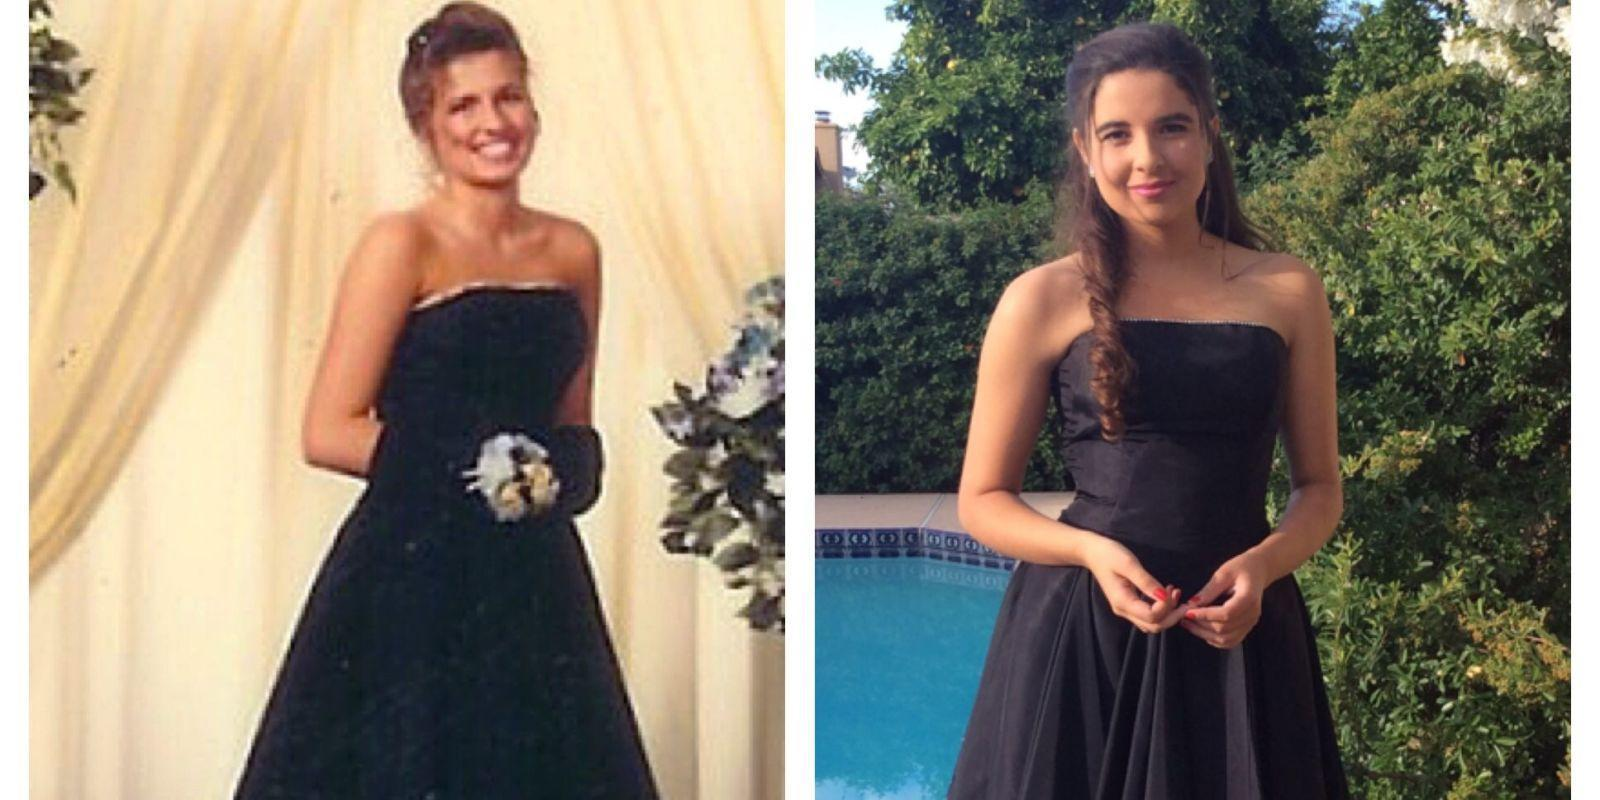 This Teen Wore Her Mother's Prom Dress to Her Senior Prom